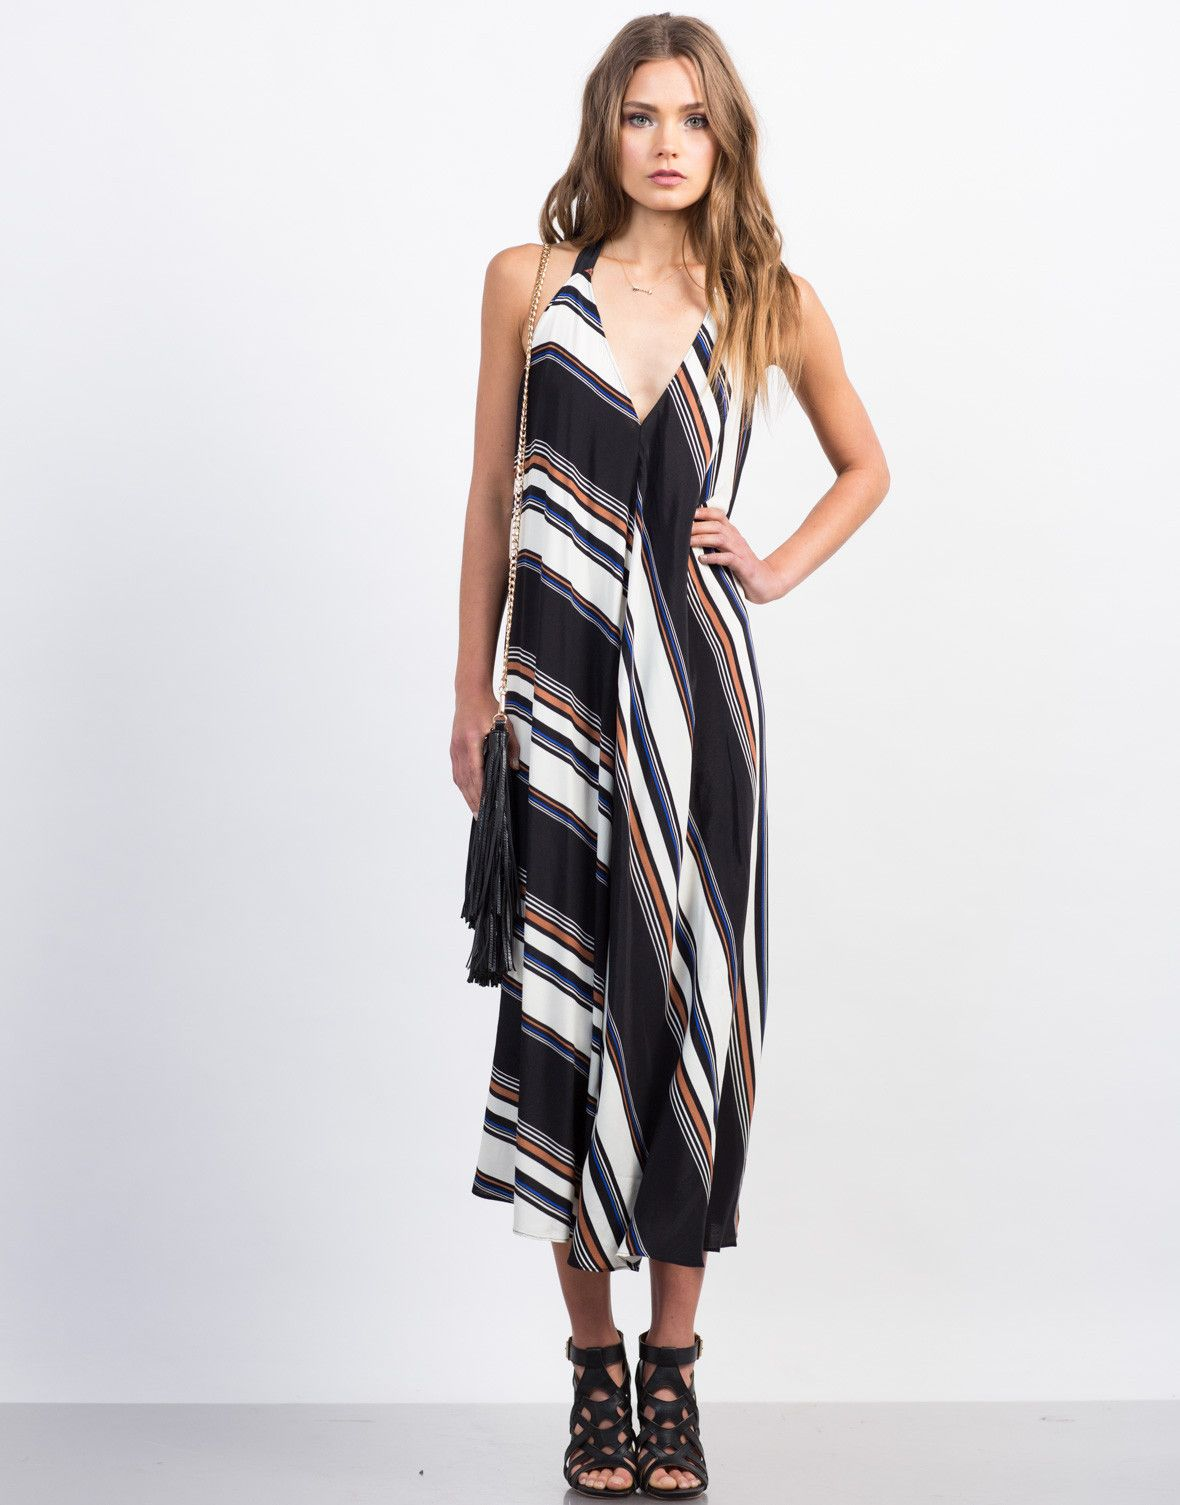 81b93b75b80 This Multi-Striped Maxi Dress is made easy-to-wear to get that instant  stylish look. Looks amazing paired with a pair of black sandals